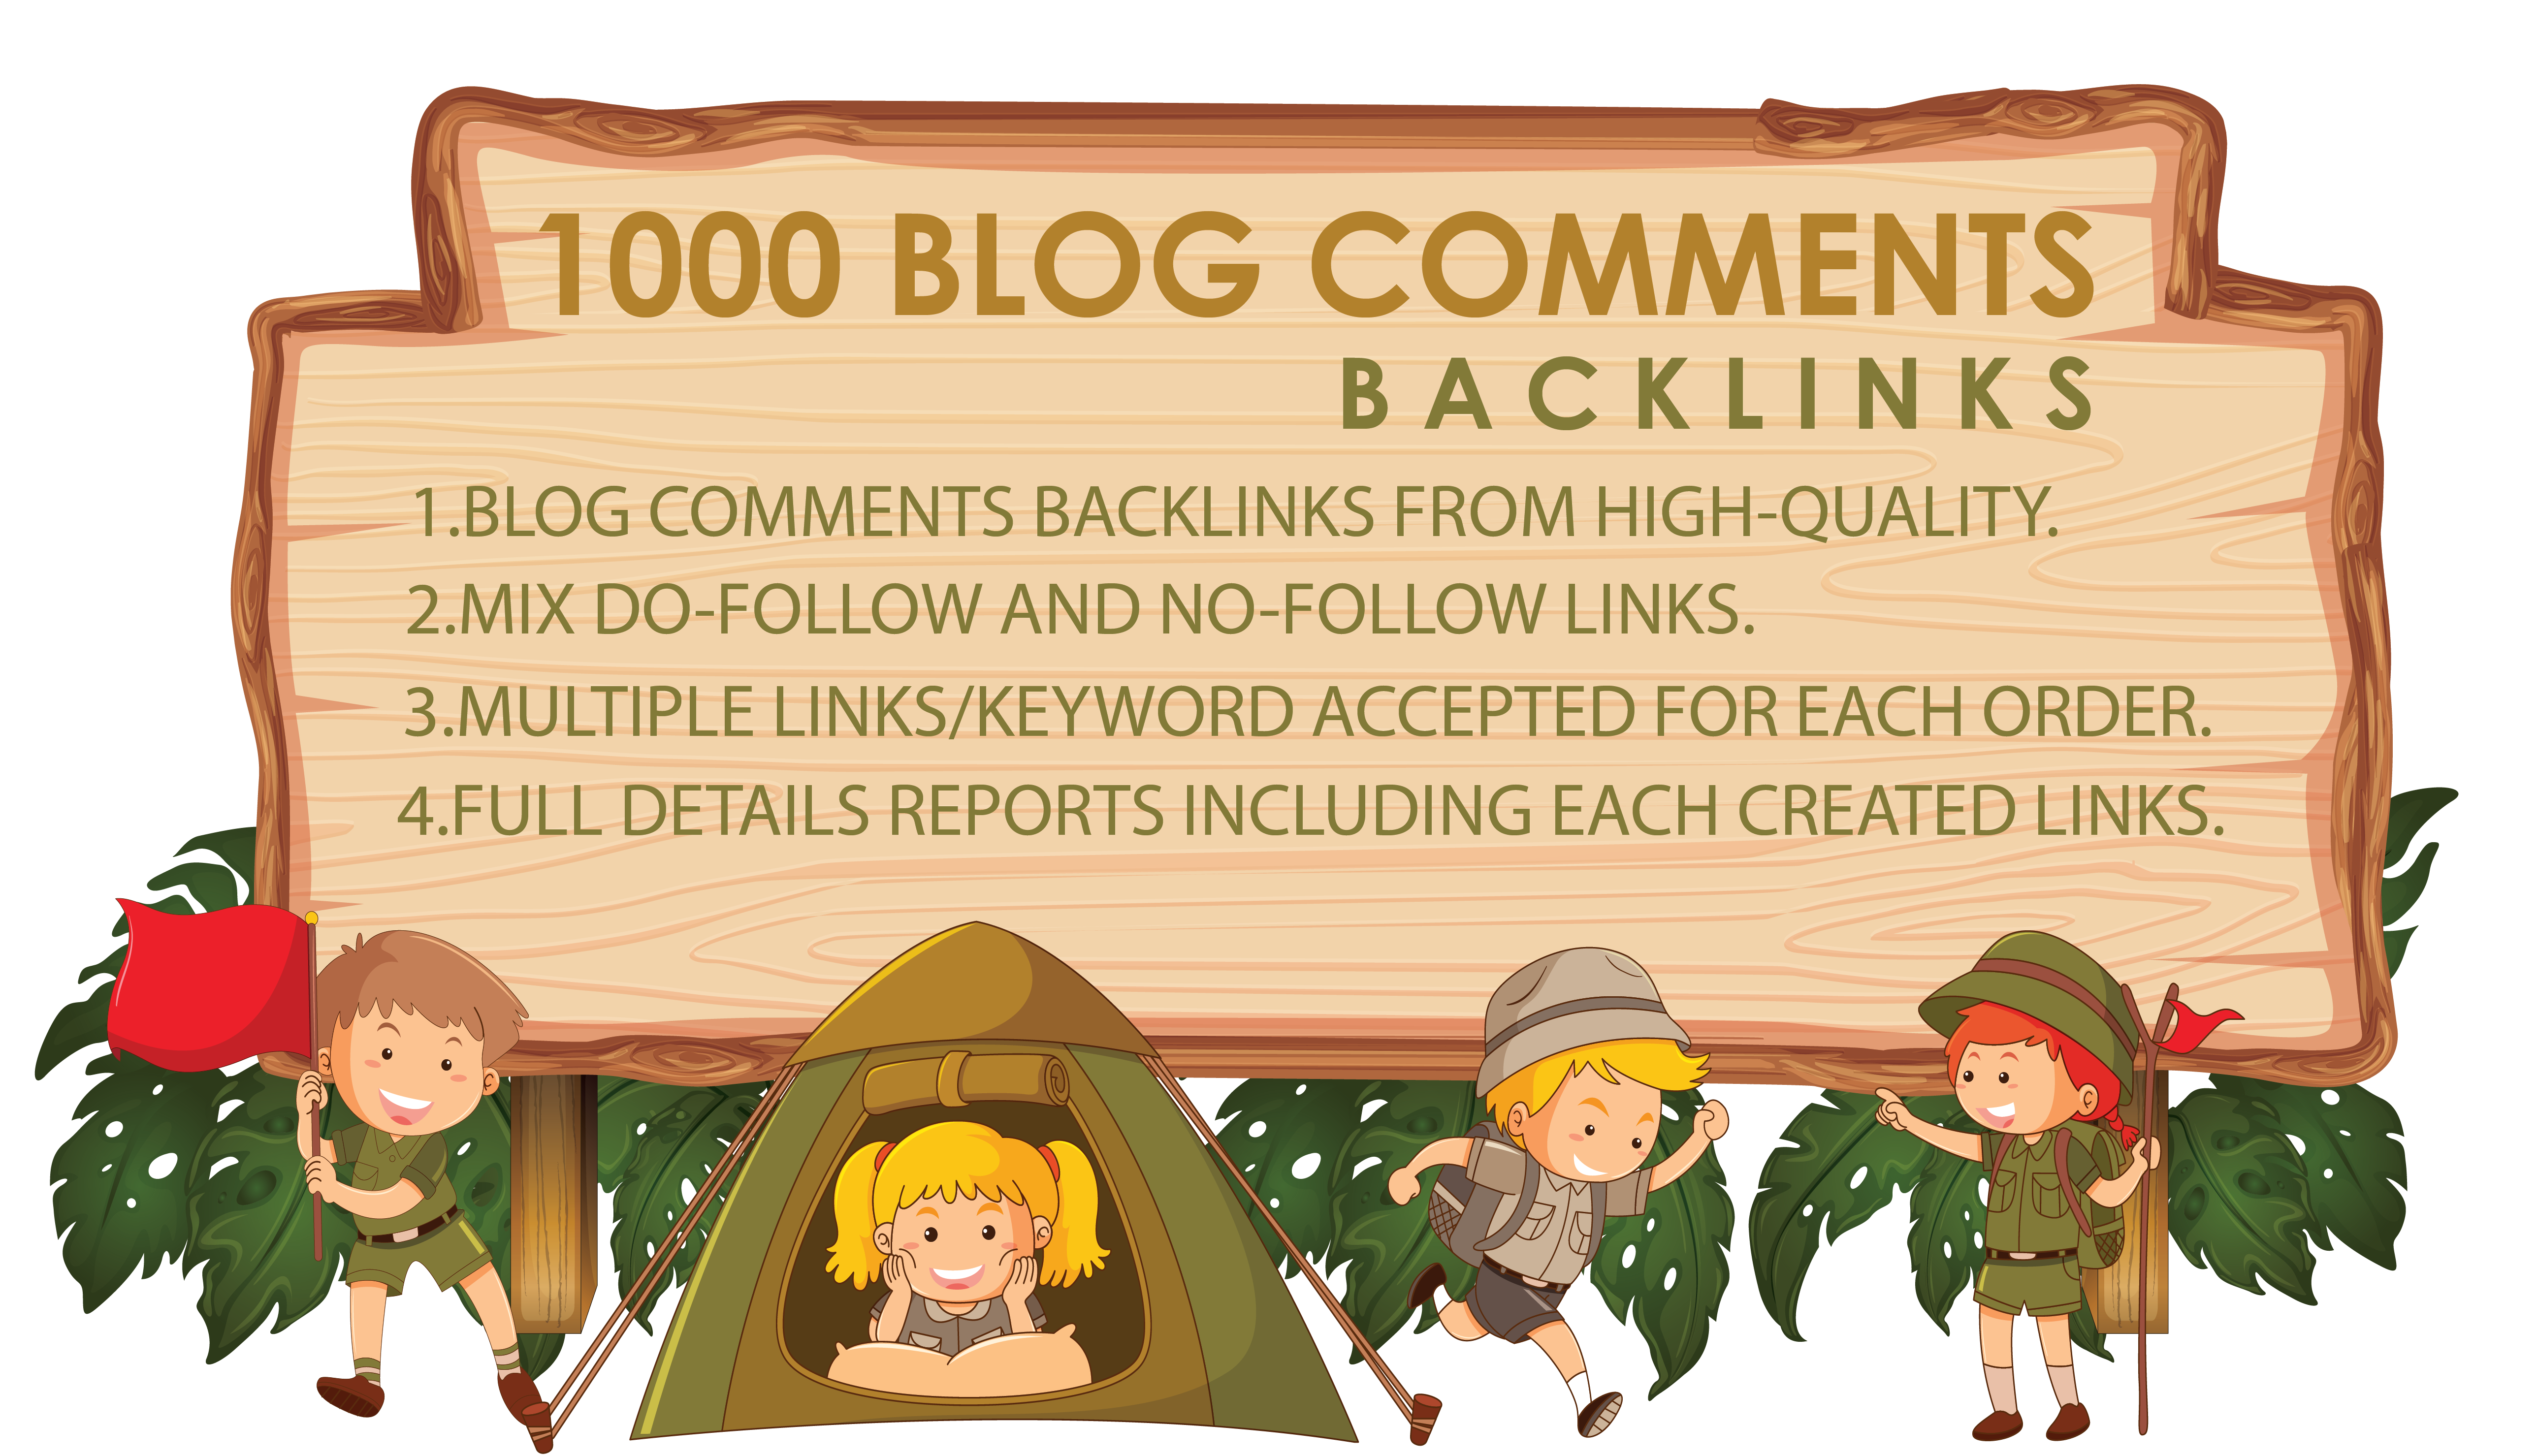 Provide 1000 Blog Comments Backlinks From High Quality